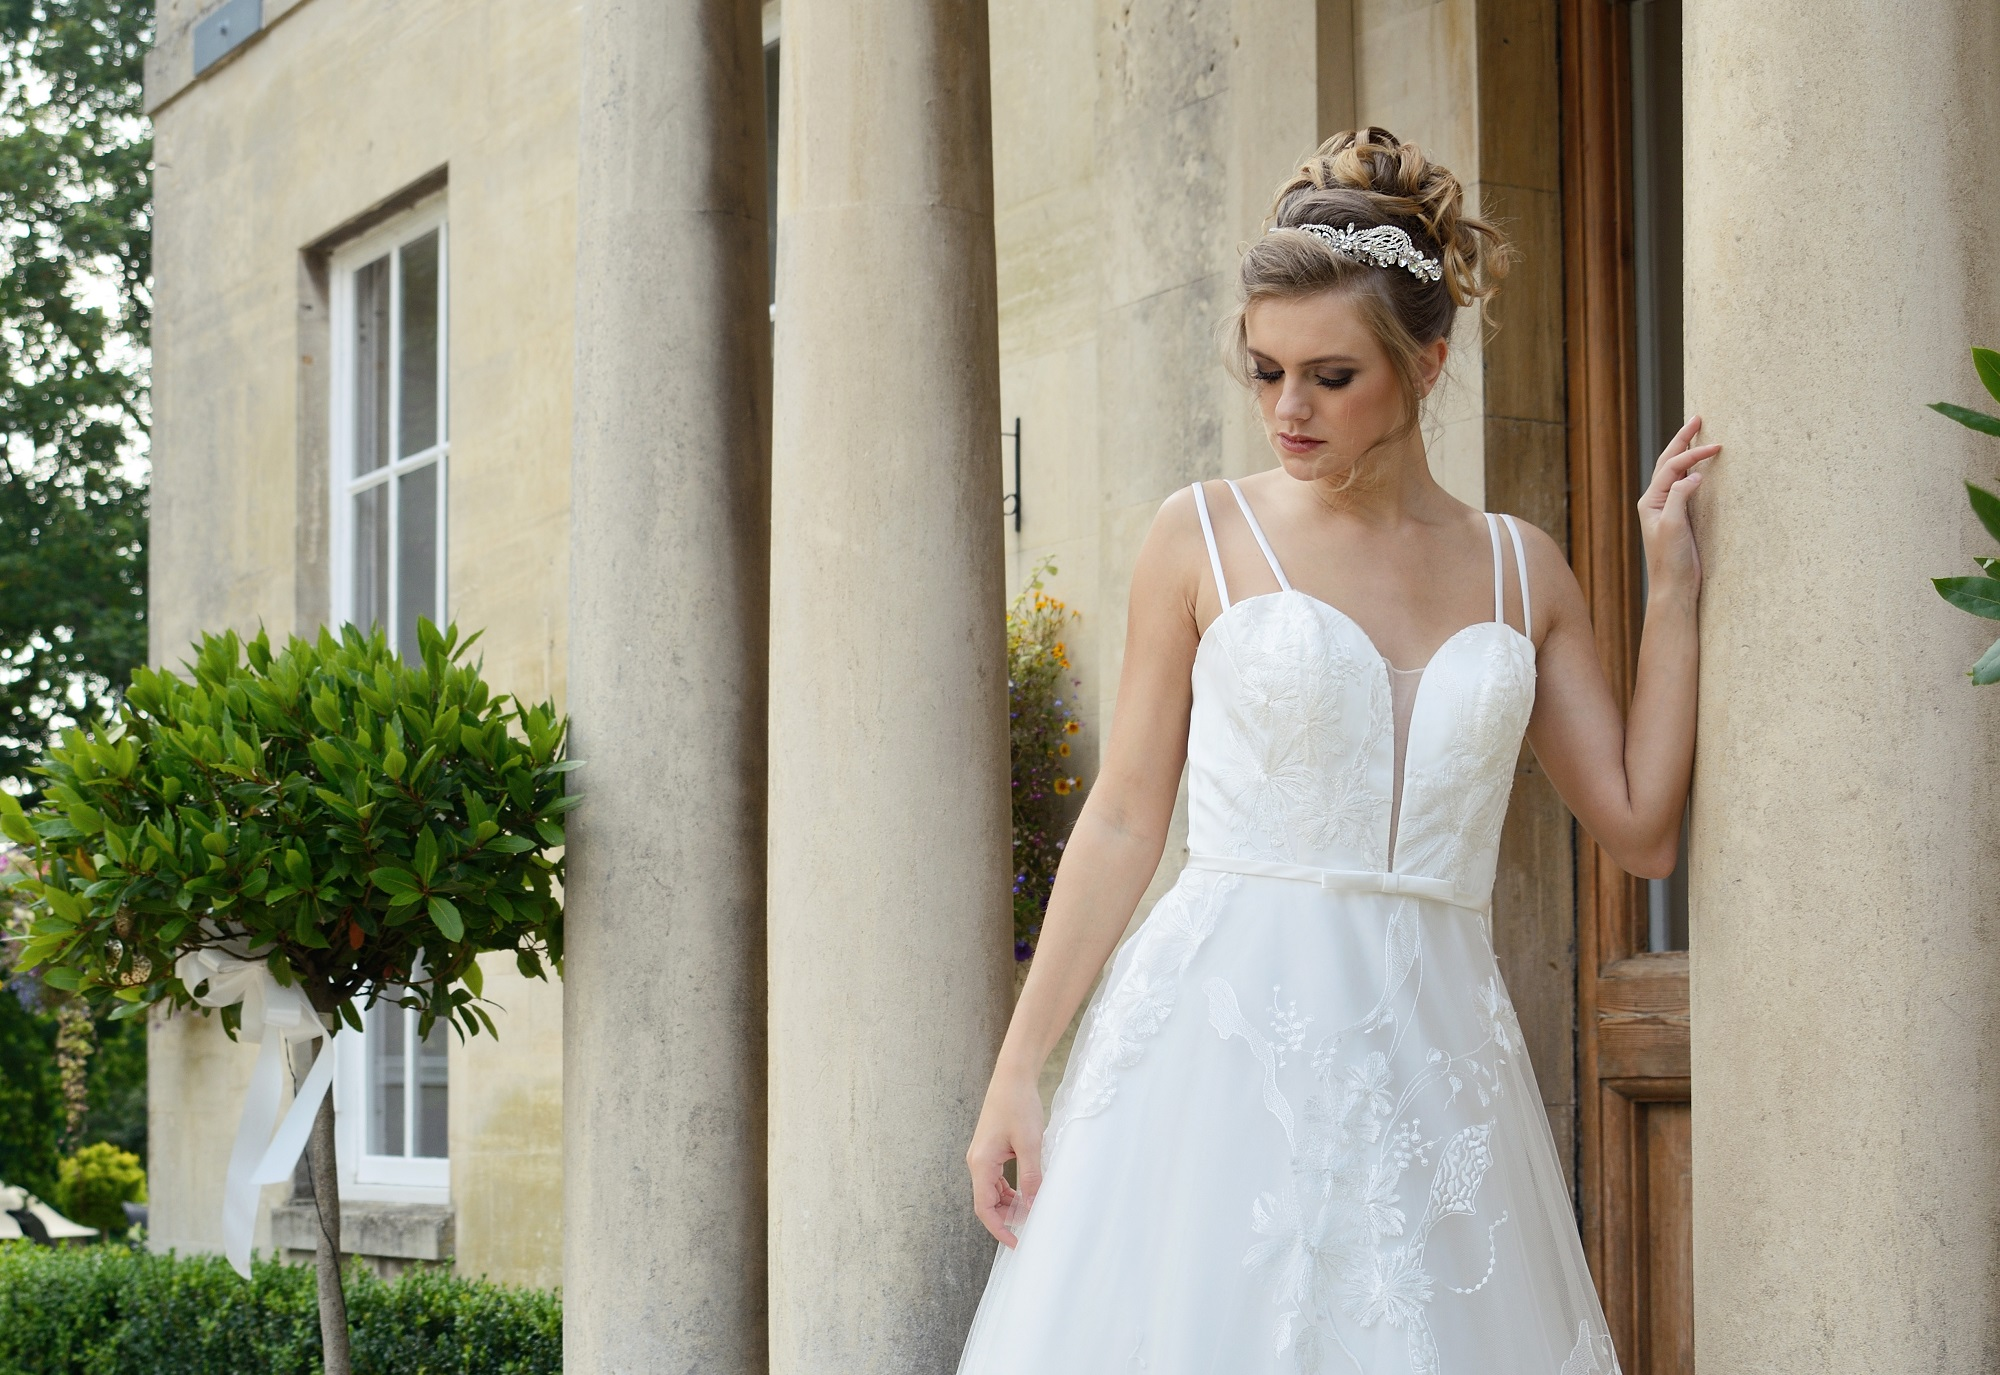 Win a Catherine Parry wedding dress worth £1,545! - Love Our Wedding